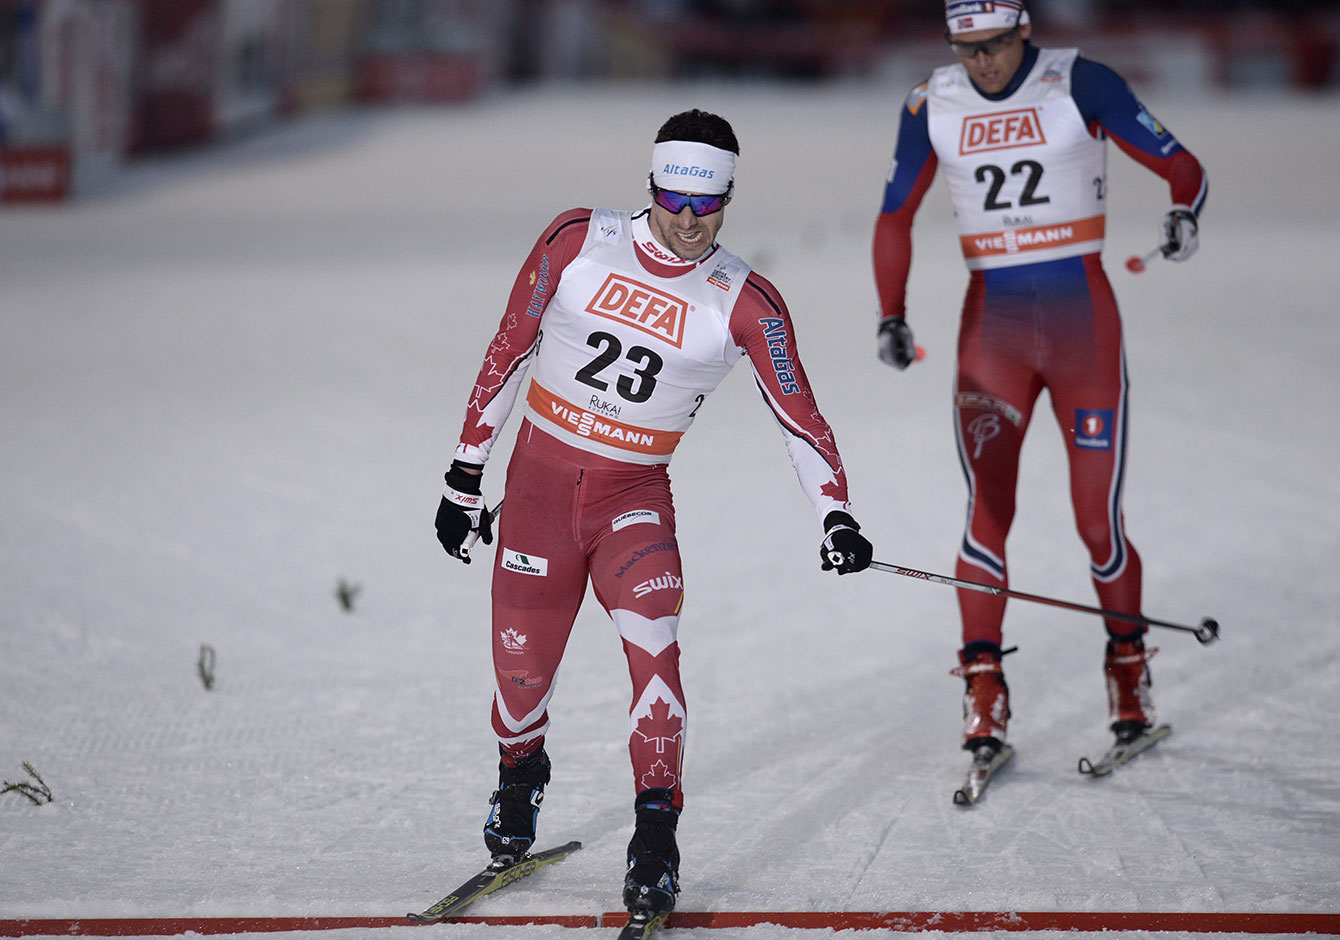 Alex Harvey edges Dario Cologna of Switzerland in Kuusamo, Finland to win FIS World Cup skate-ski silver on November 28, 2015.